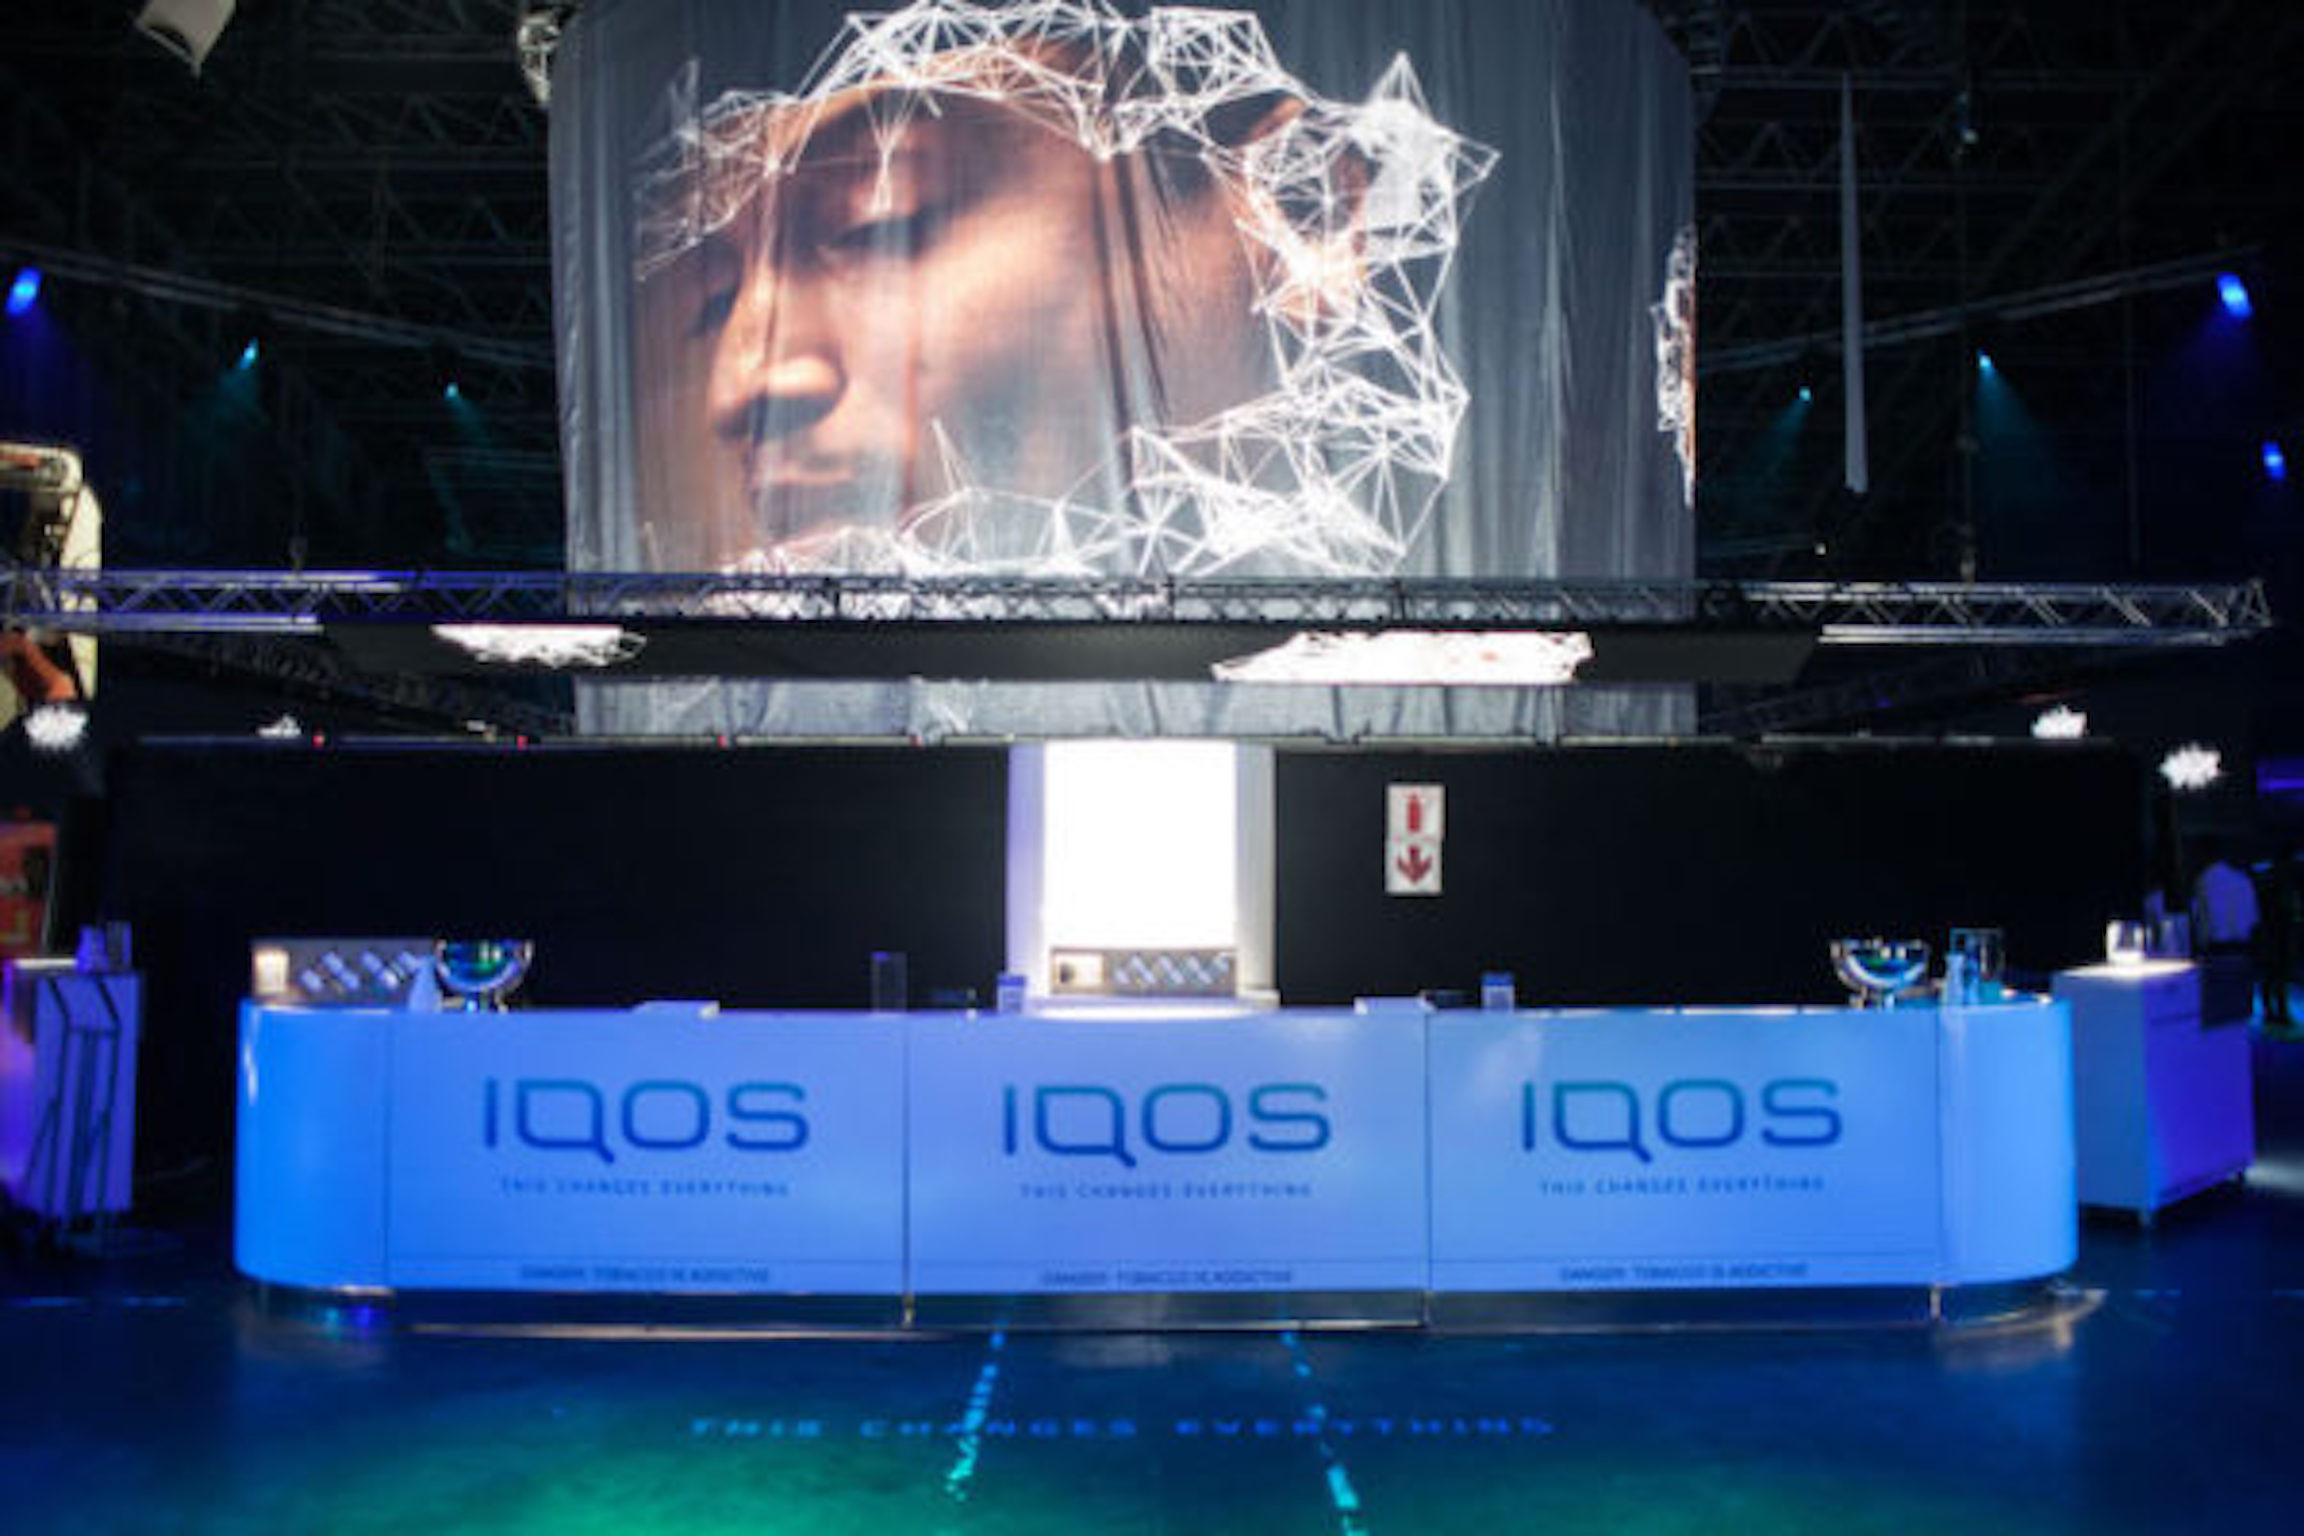 IQOS this changes everything